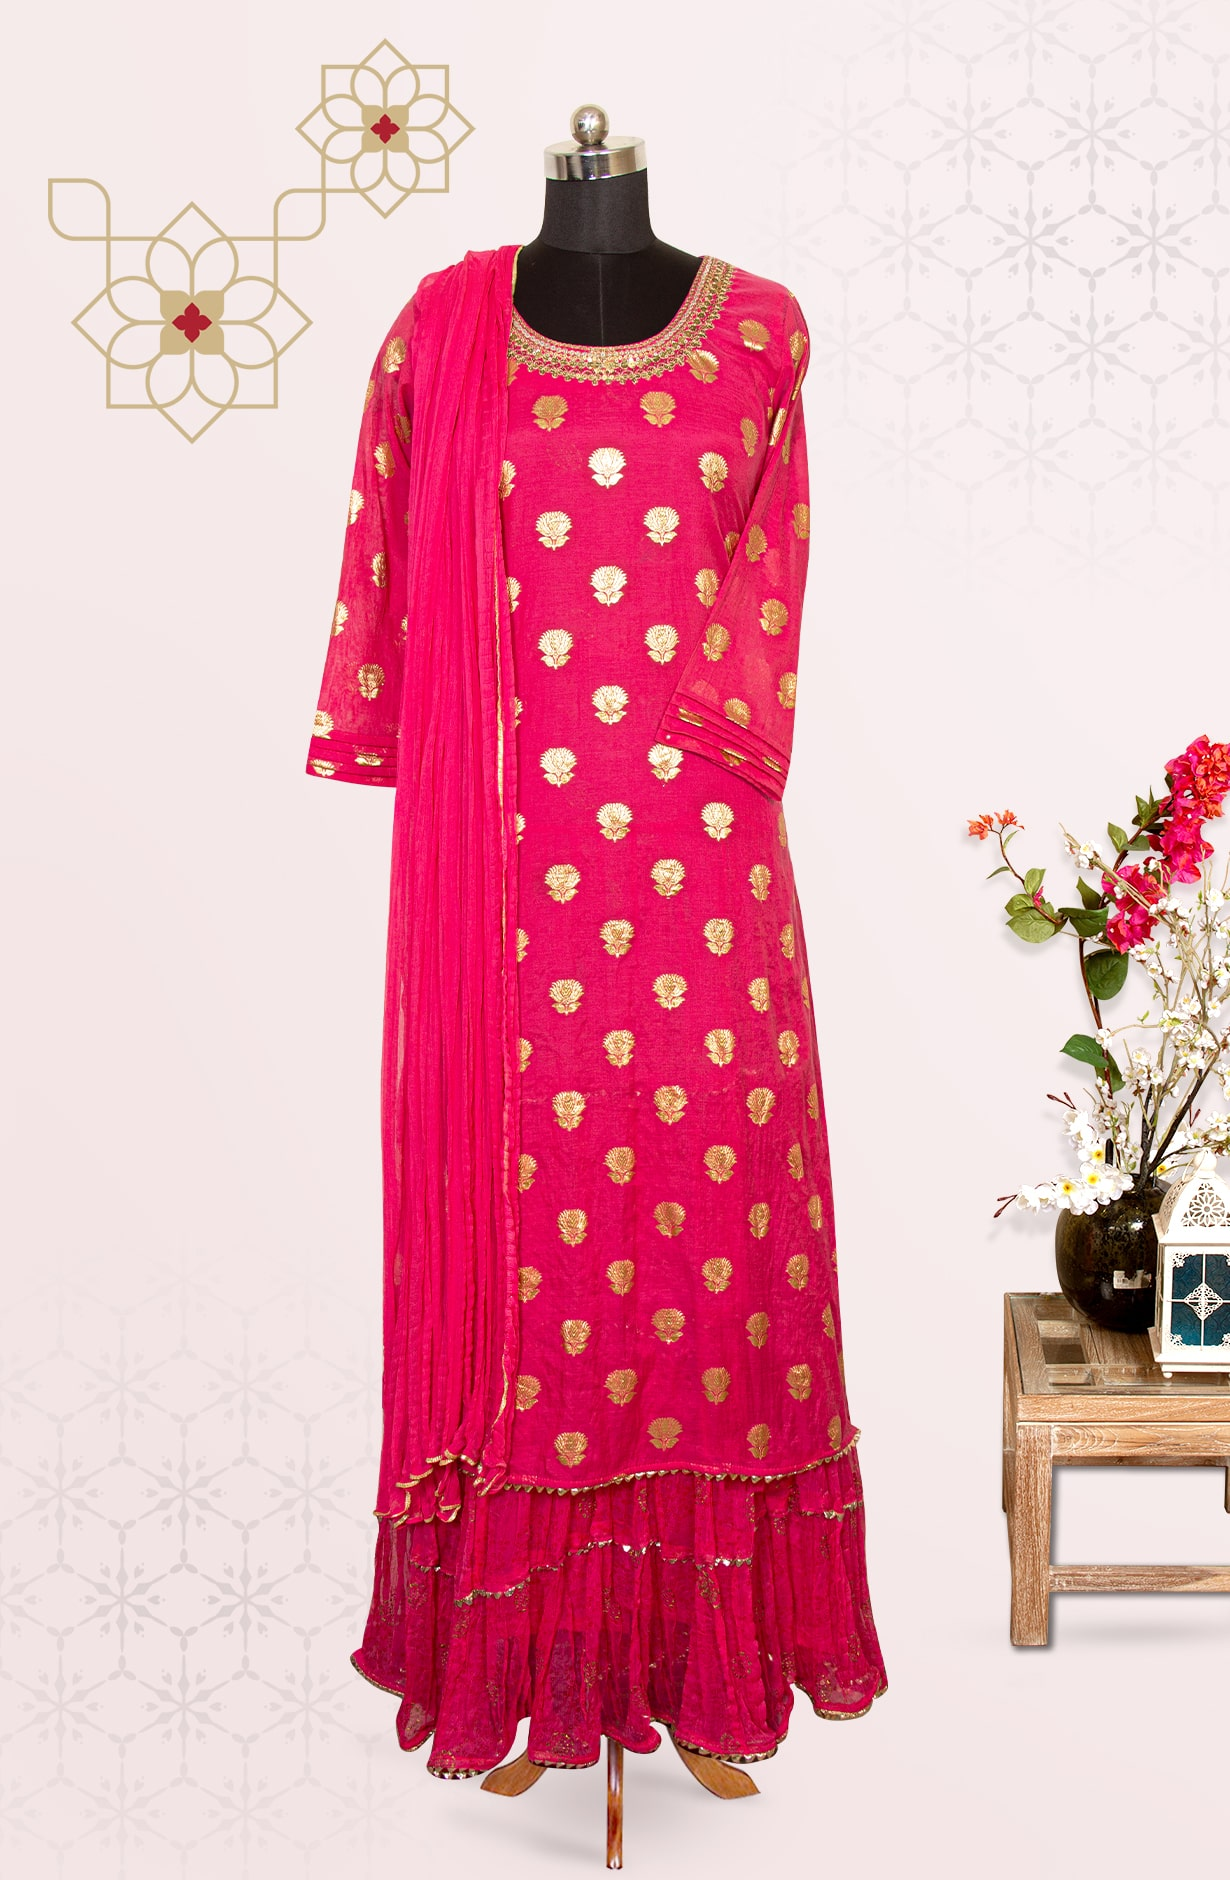 Pink Chanderi Exclusive Suit with Chiffon Dupatta - R150-R181A